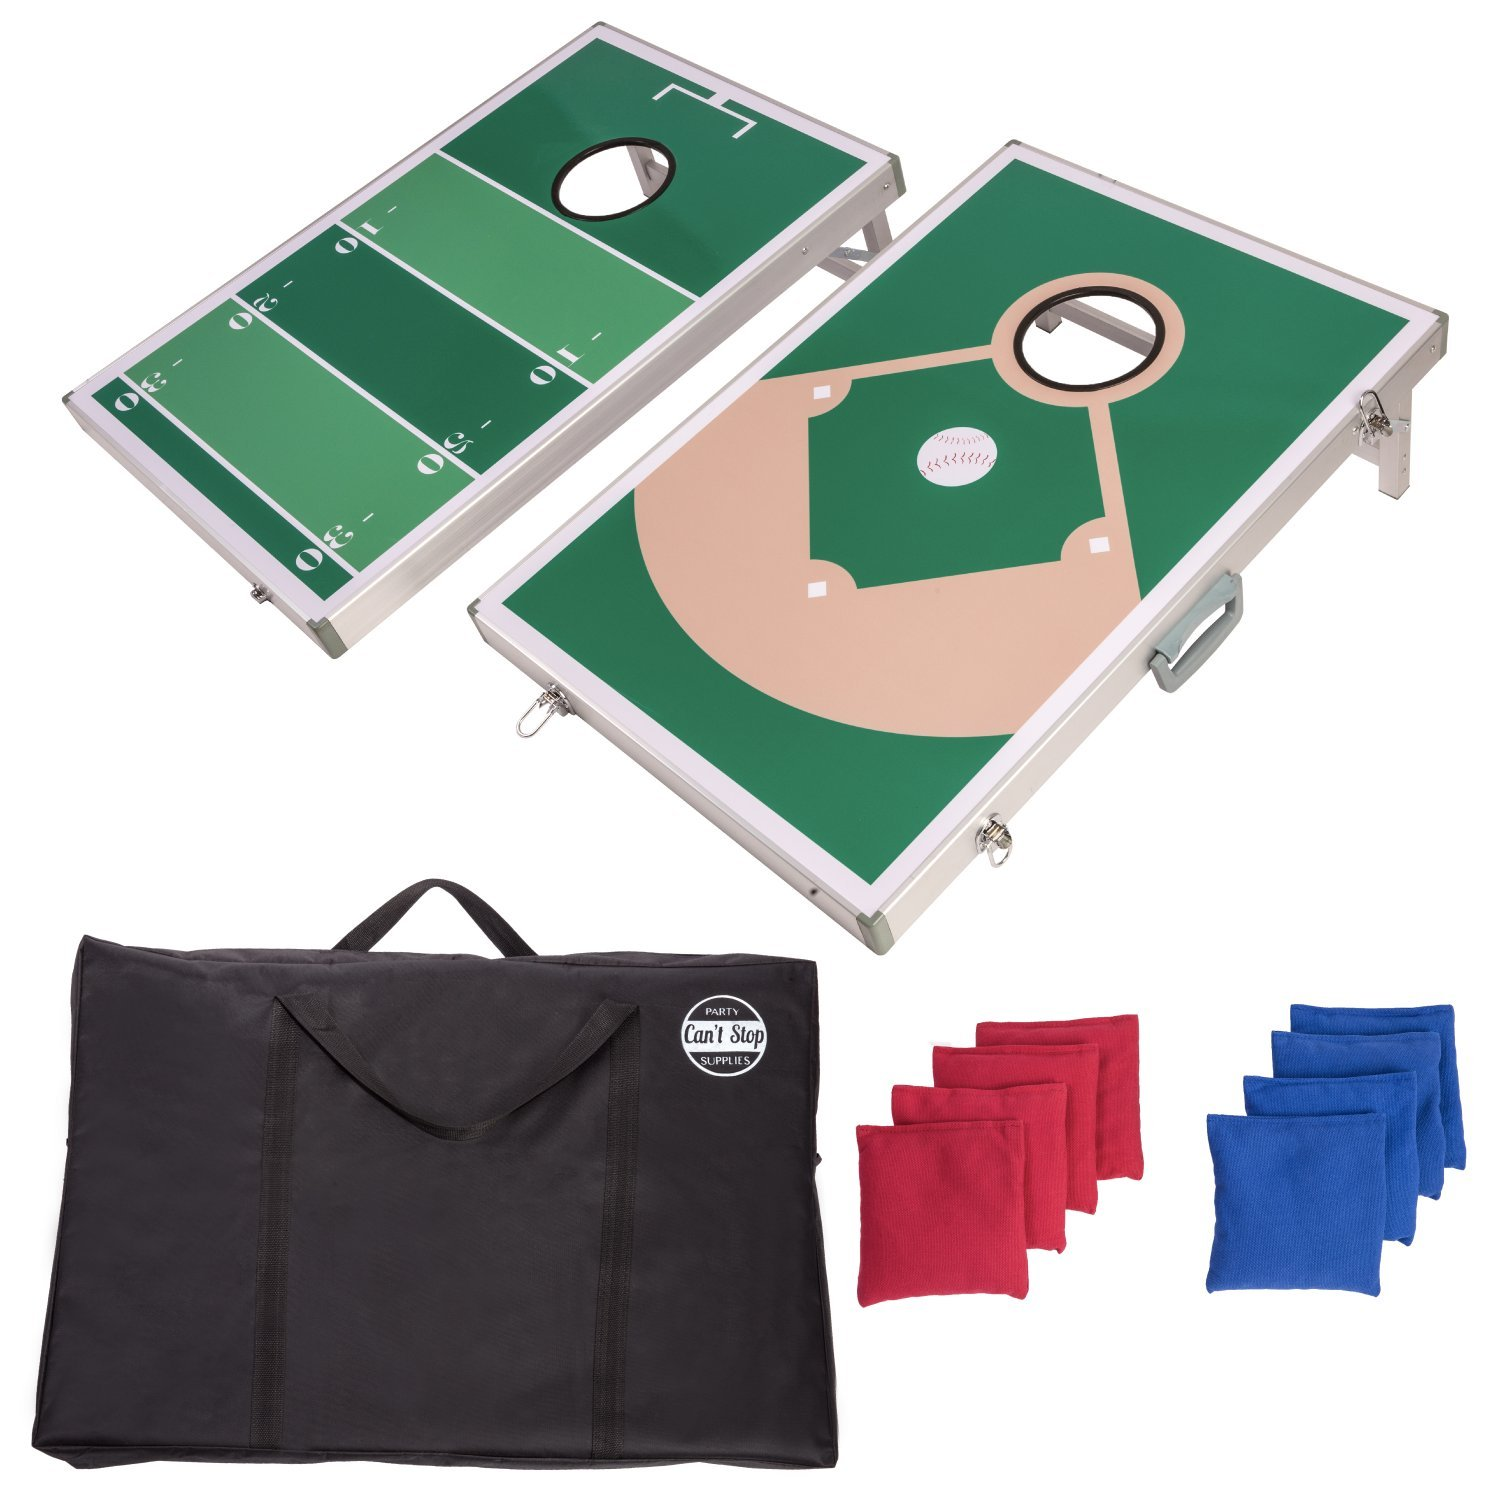 CAN'T STOP PARTY SUPPLIES Cornhole Board Game Set w/ 2 Boards and 8 Beanbags